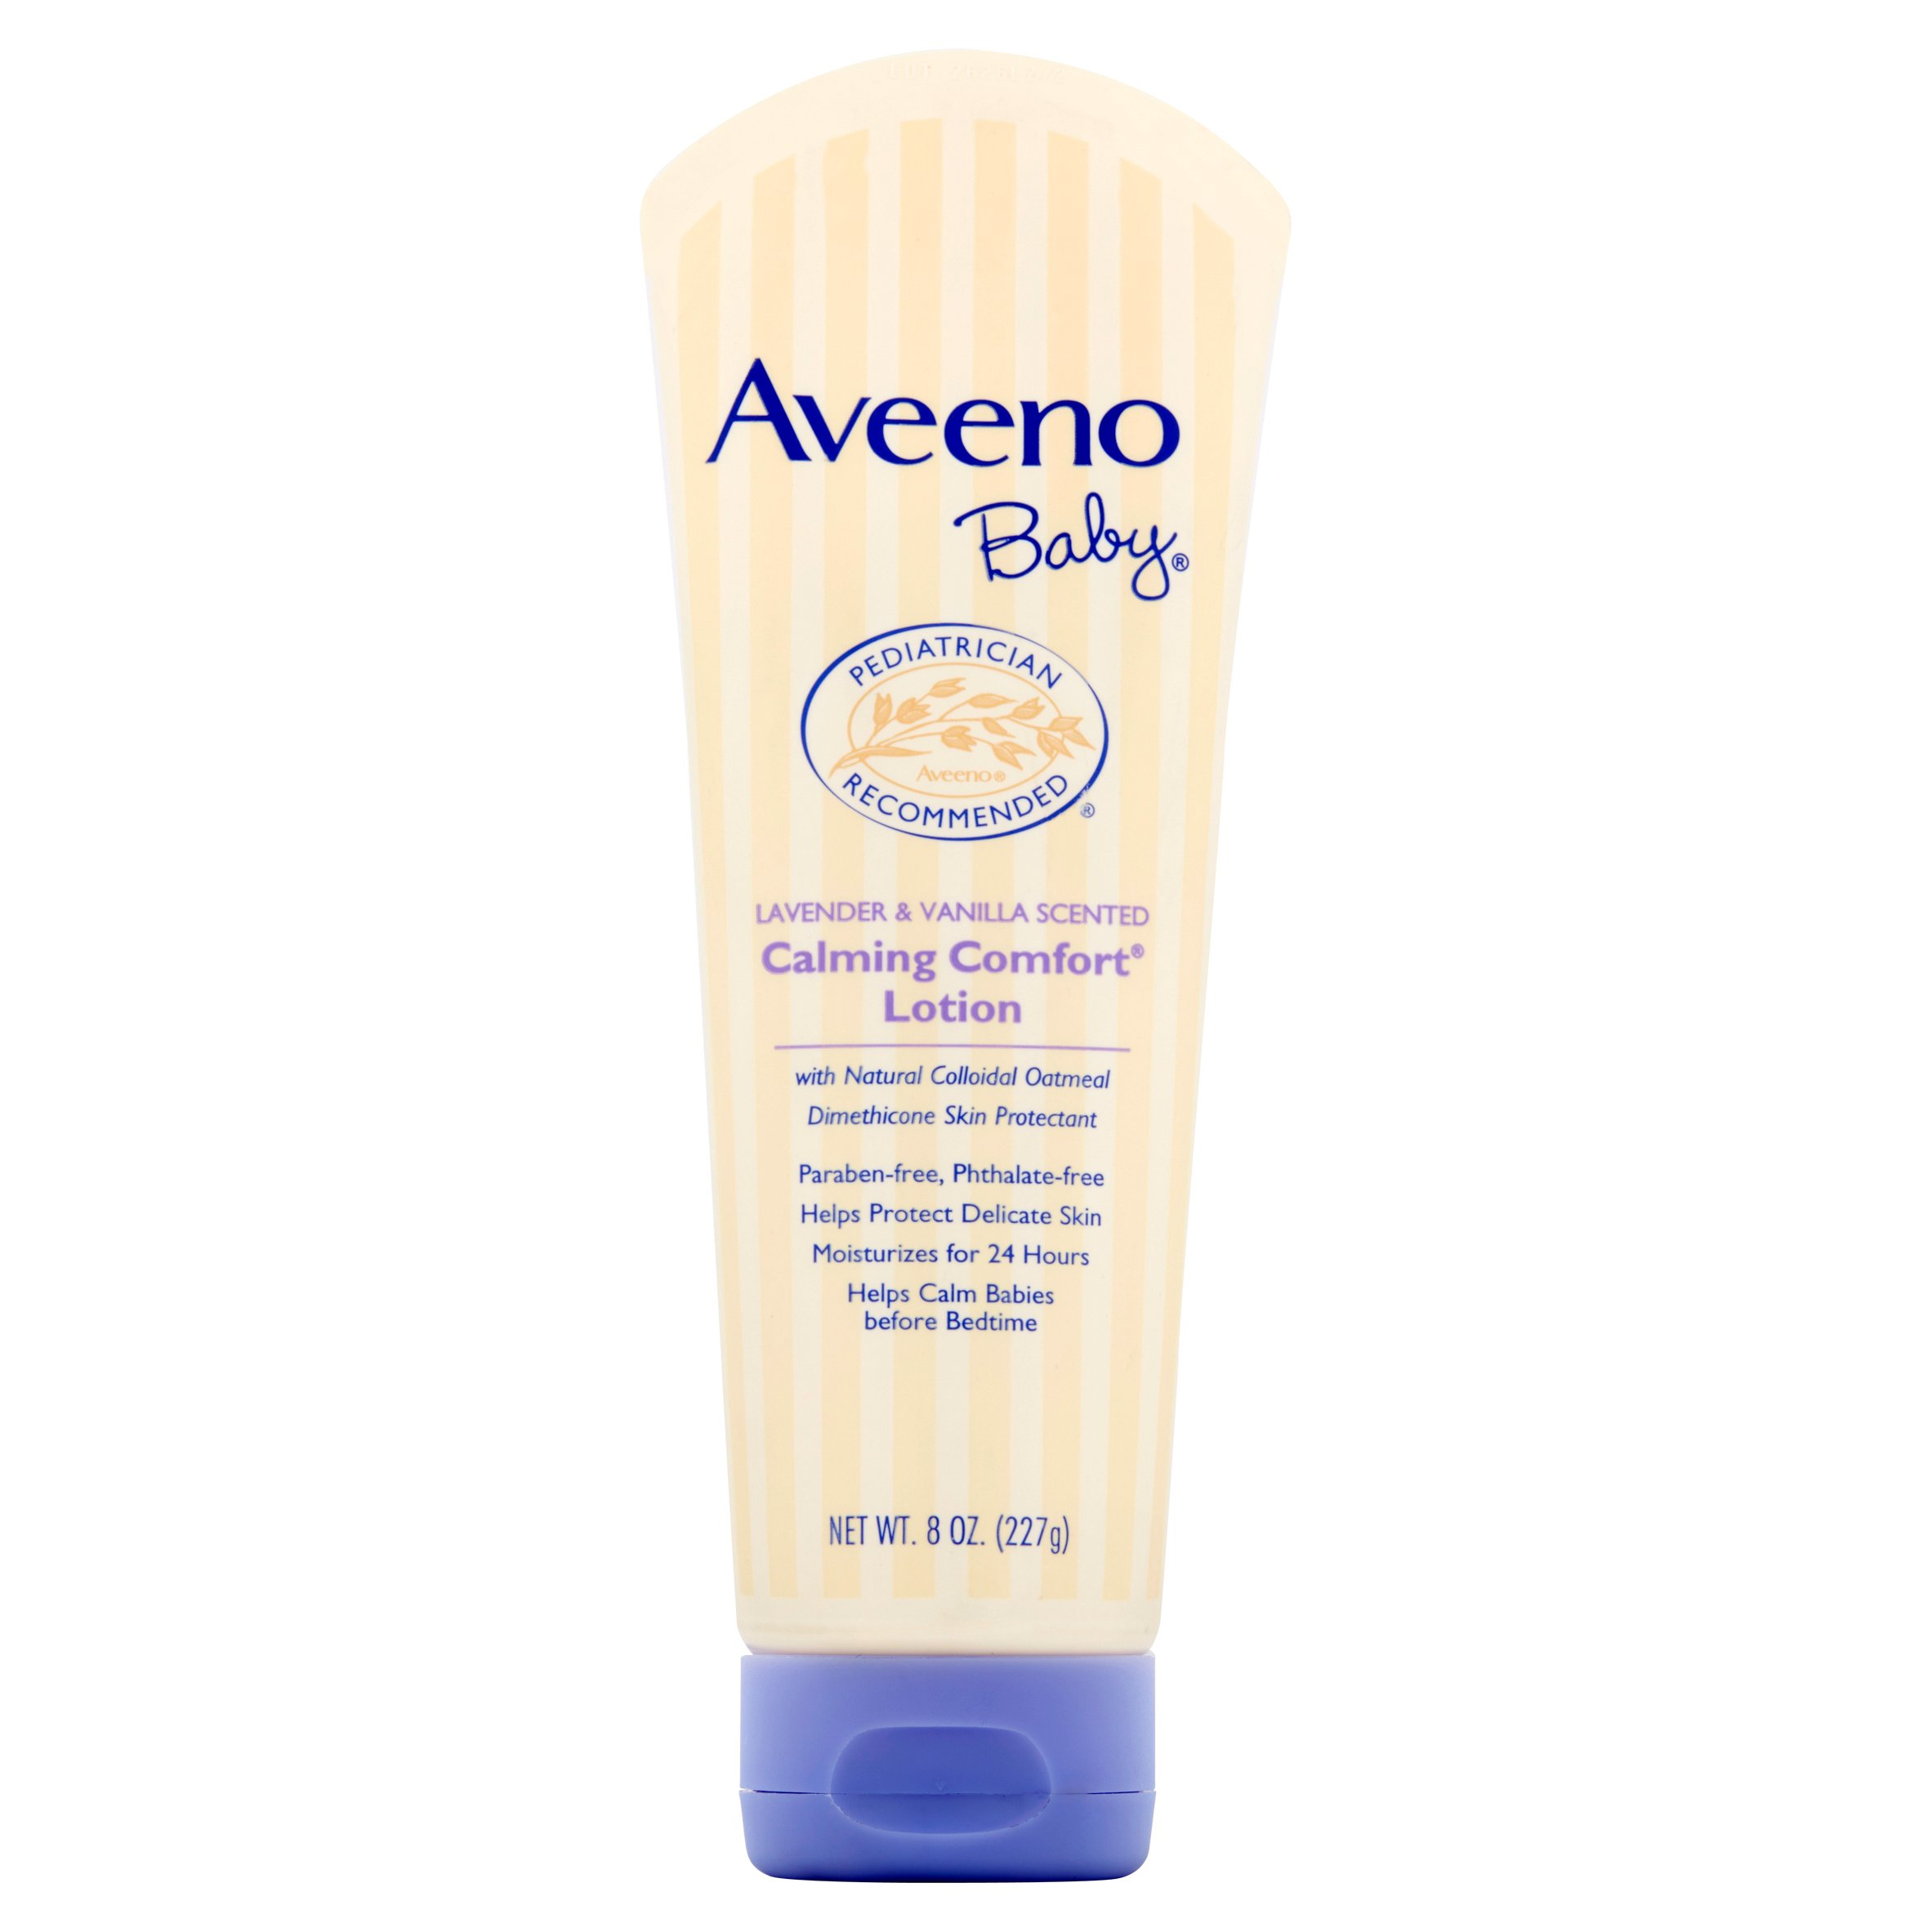 Aveeno Baby Calming Comfort Lotion Lavender & Vanilla, 8.0 OZ by Johnson & Johnson Consumer Inc.